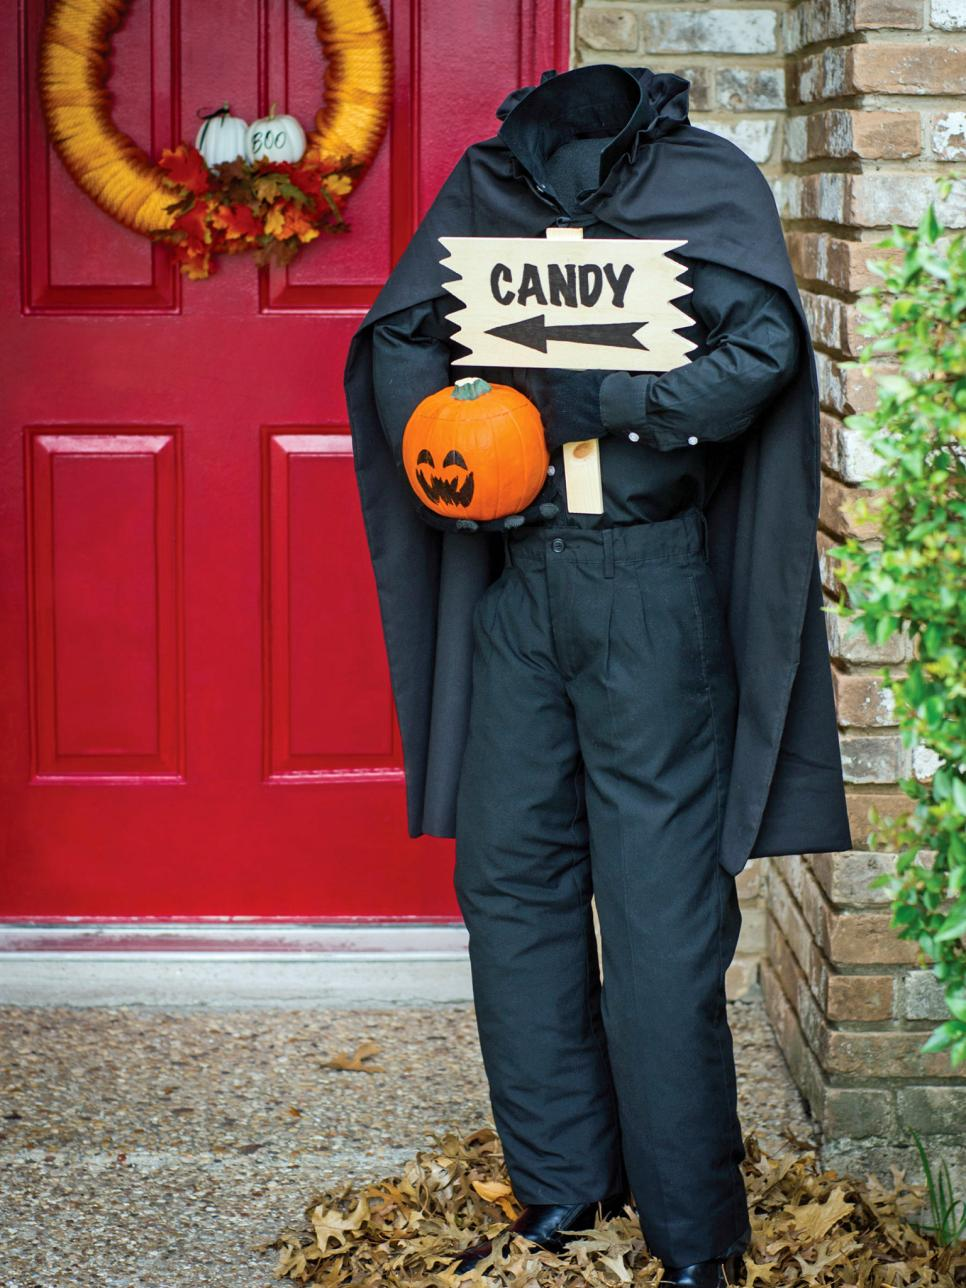 60 diy halloween decorations decorating ideas hgtv - Homemade Halloween Decorations Ideas